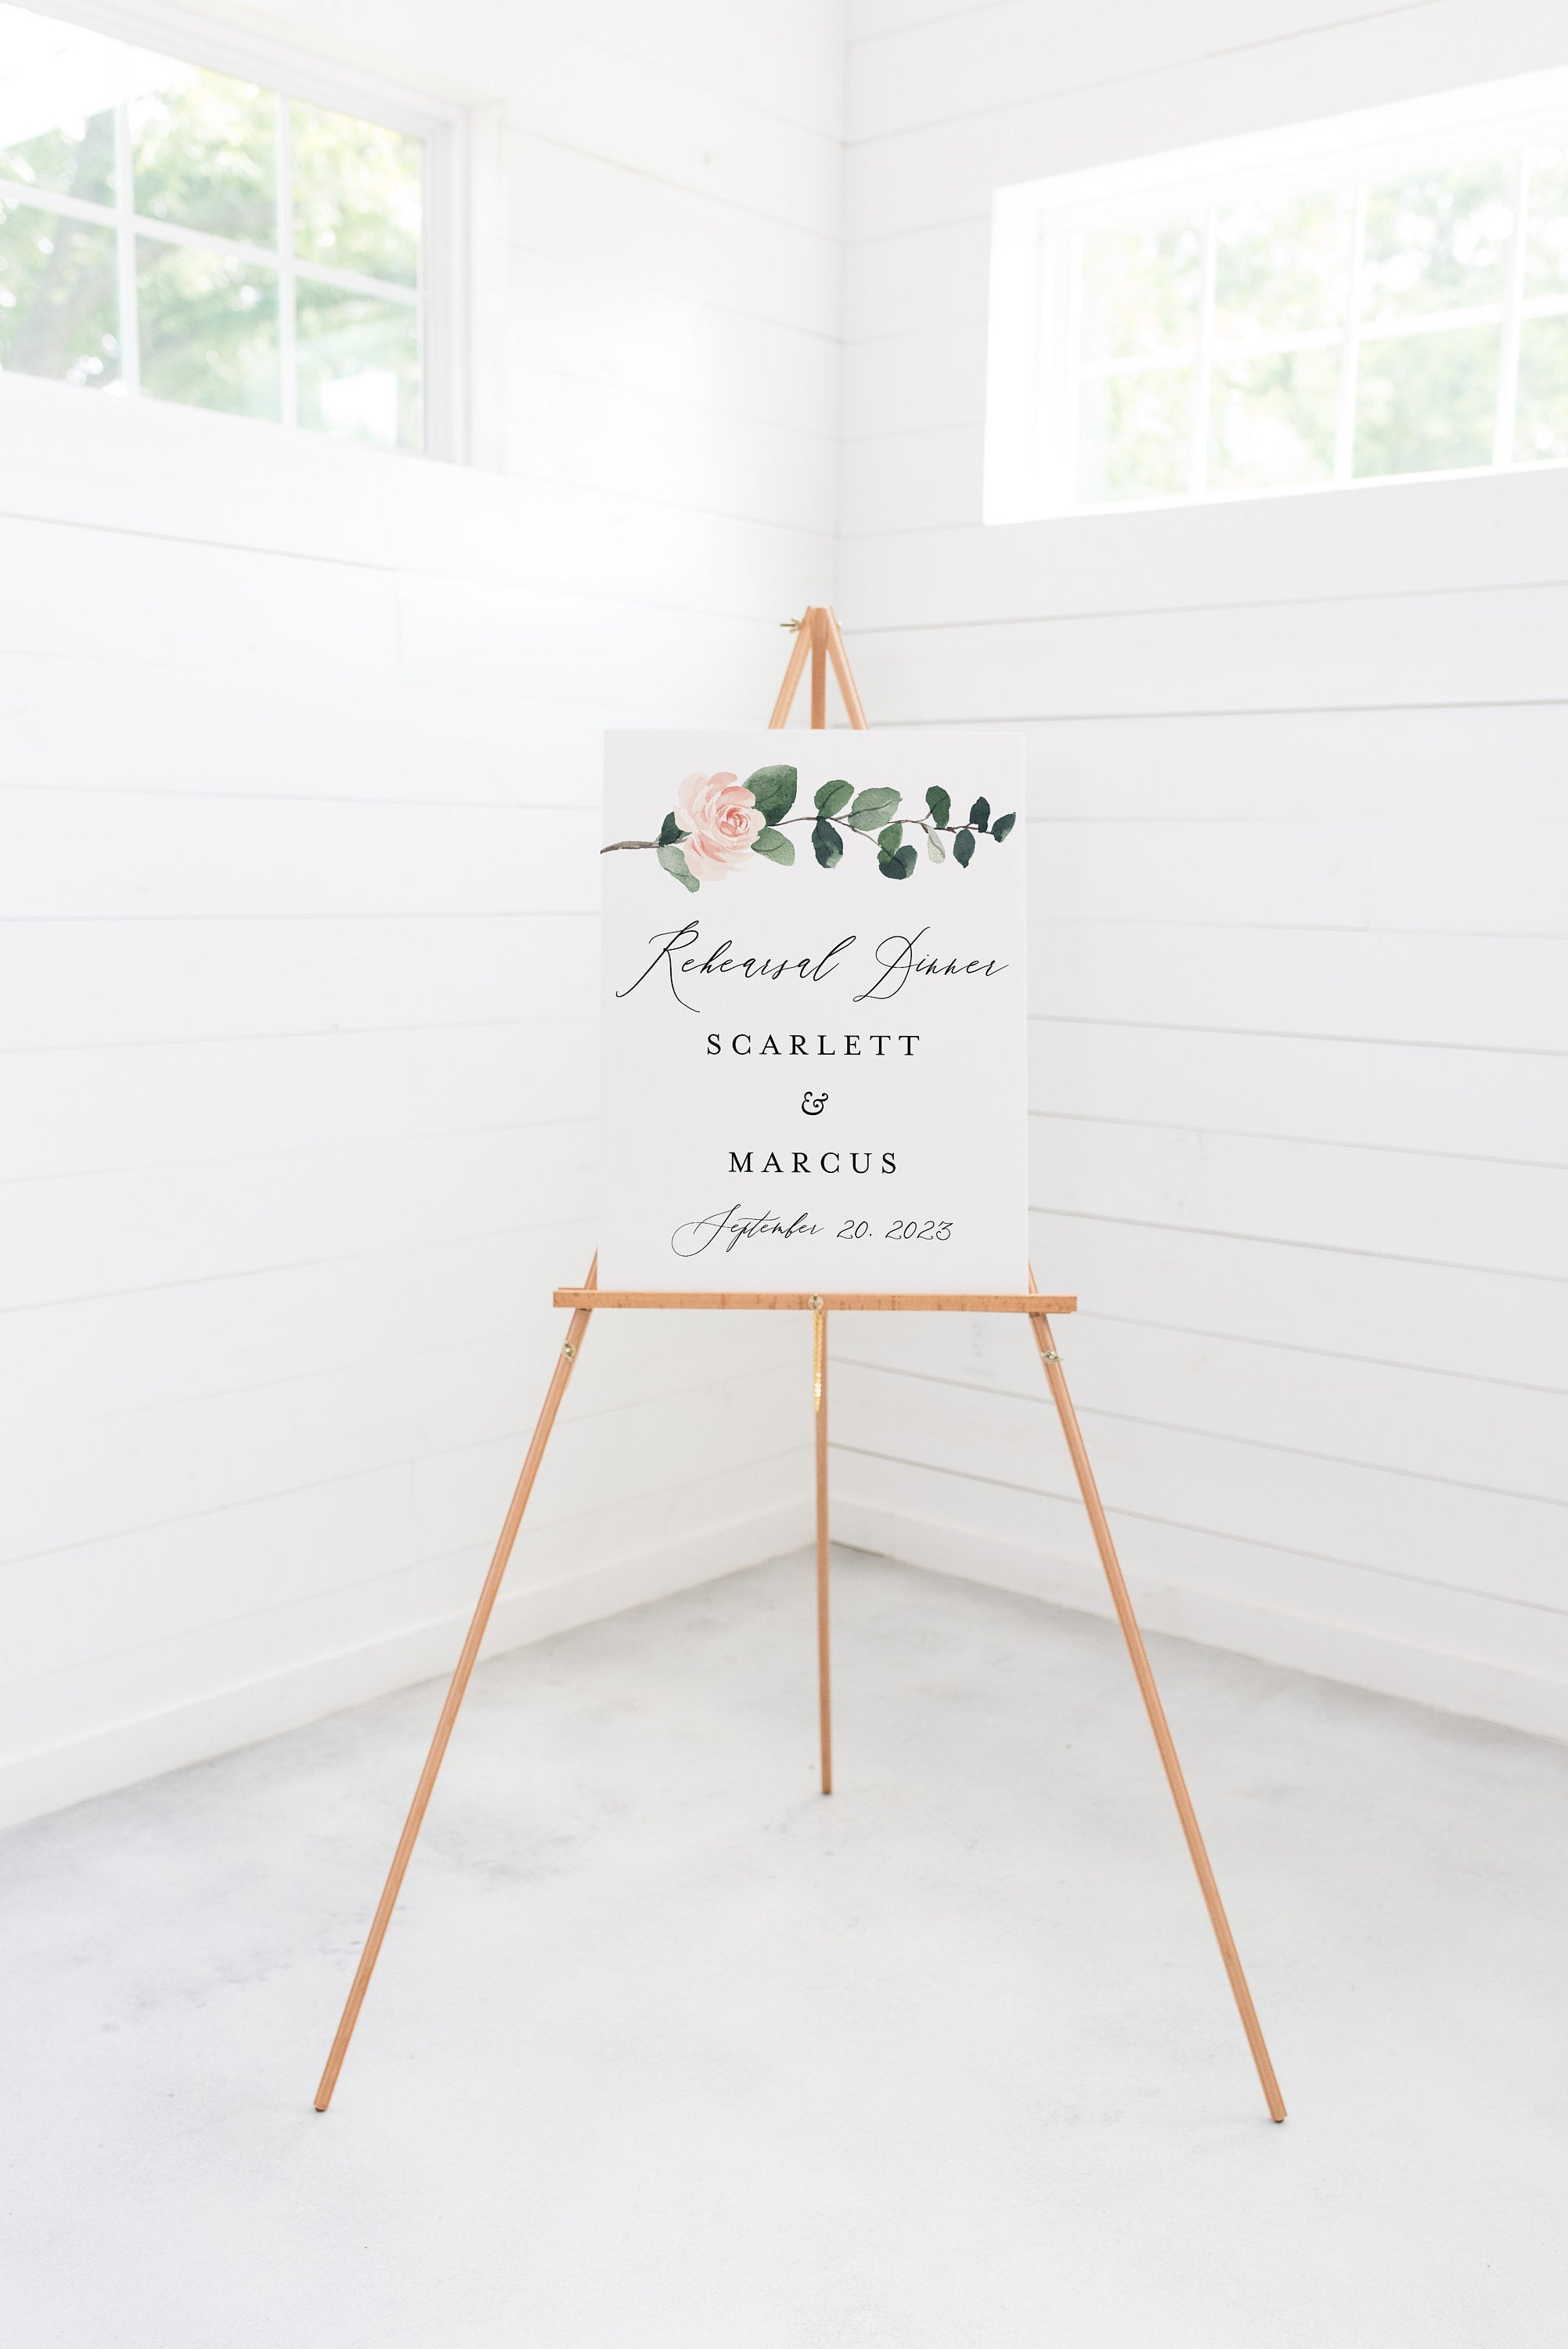 Printable Rehearsal Dinner Welcome Sign Editable Template Instant Download Greenery - Scarlett